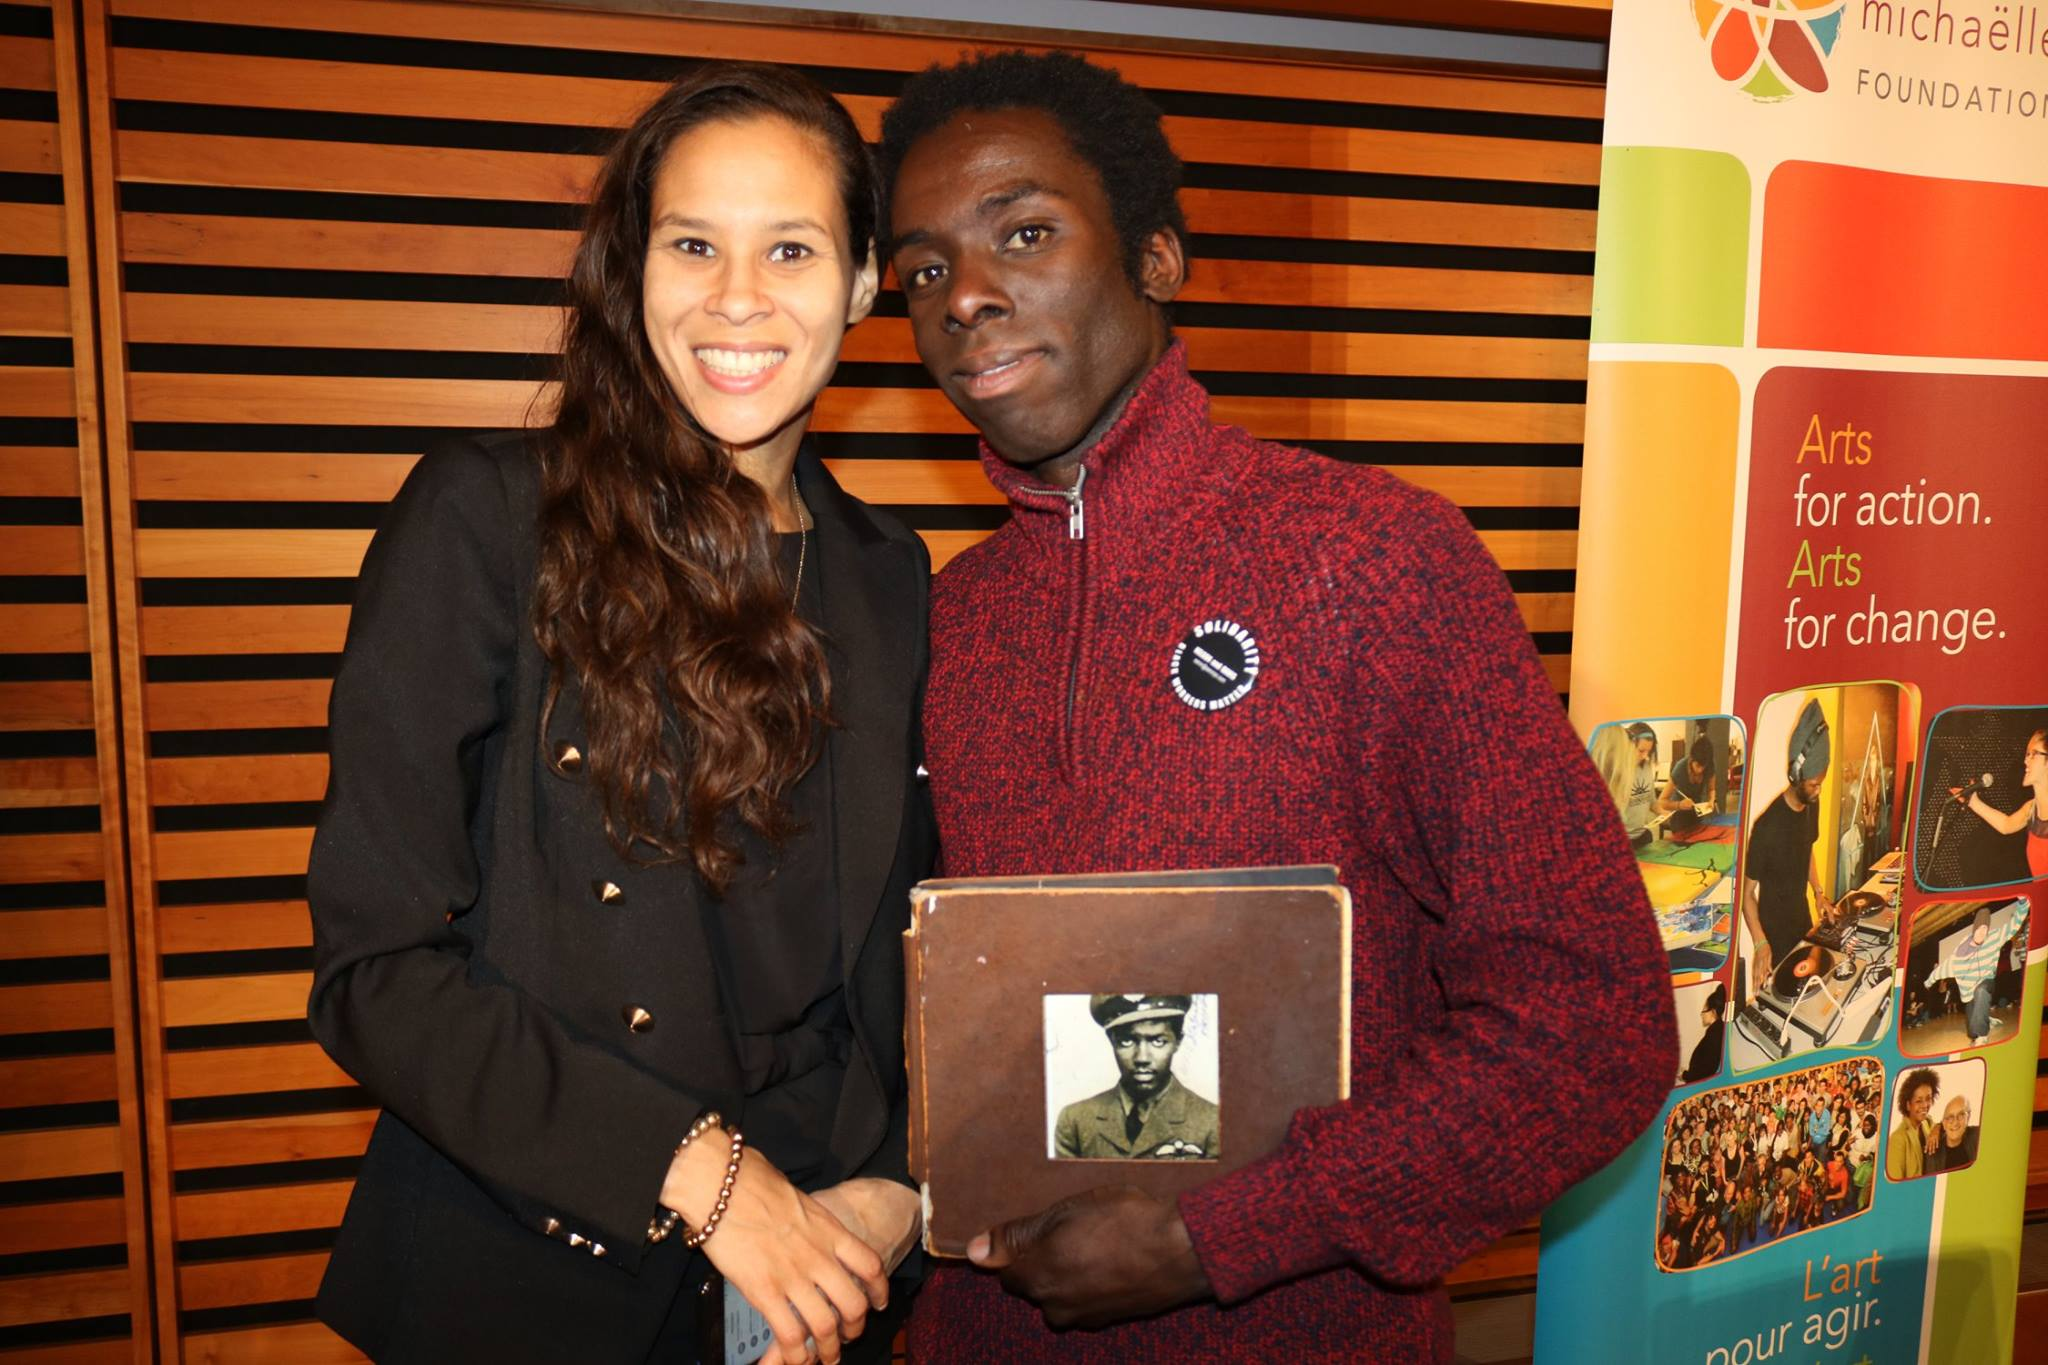 Community activists El Jones and Desmond Cole connected at the National Black Canadians Summit December 2017.